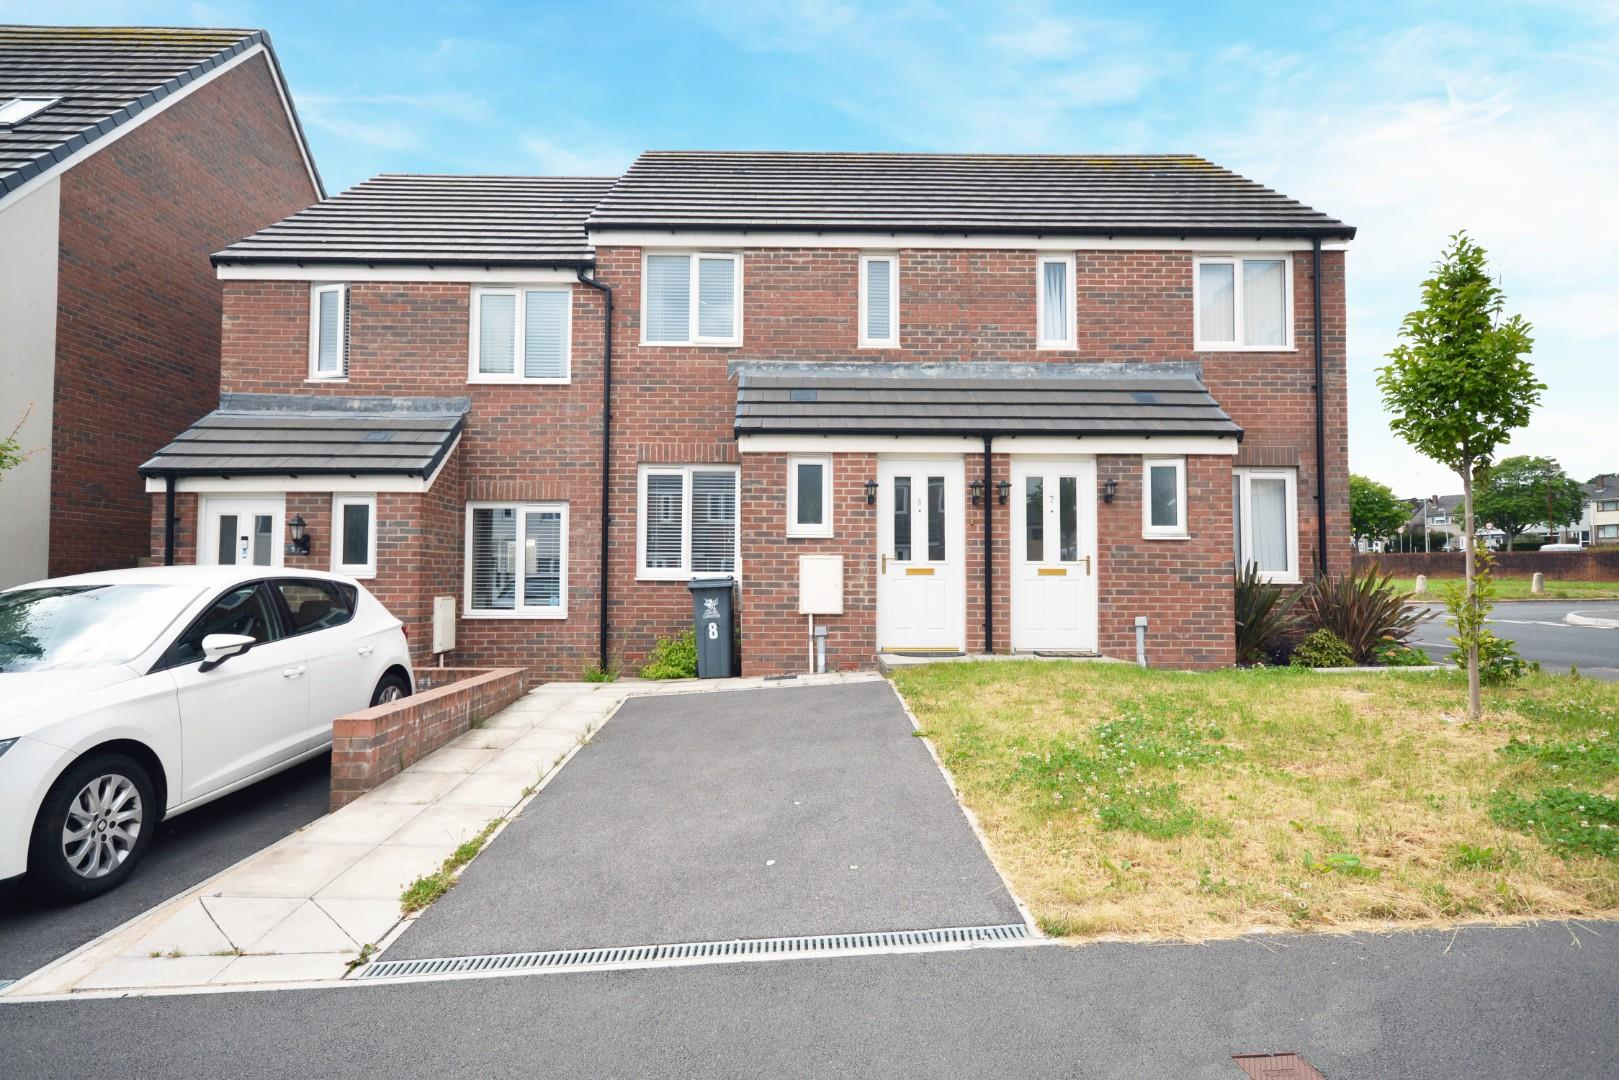 2 bed terraced house for sale in Maelfa, Cardiff, CF23